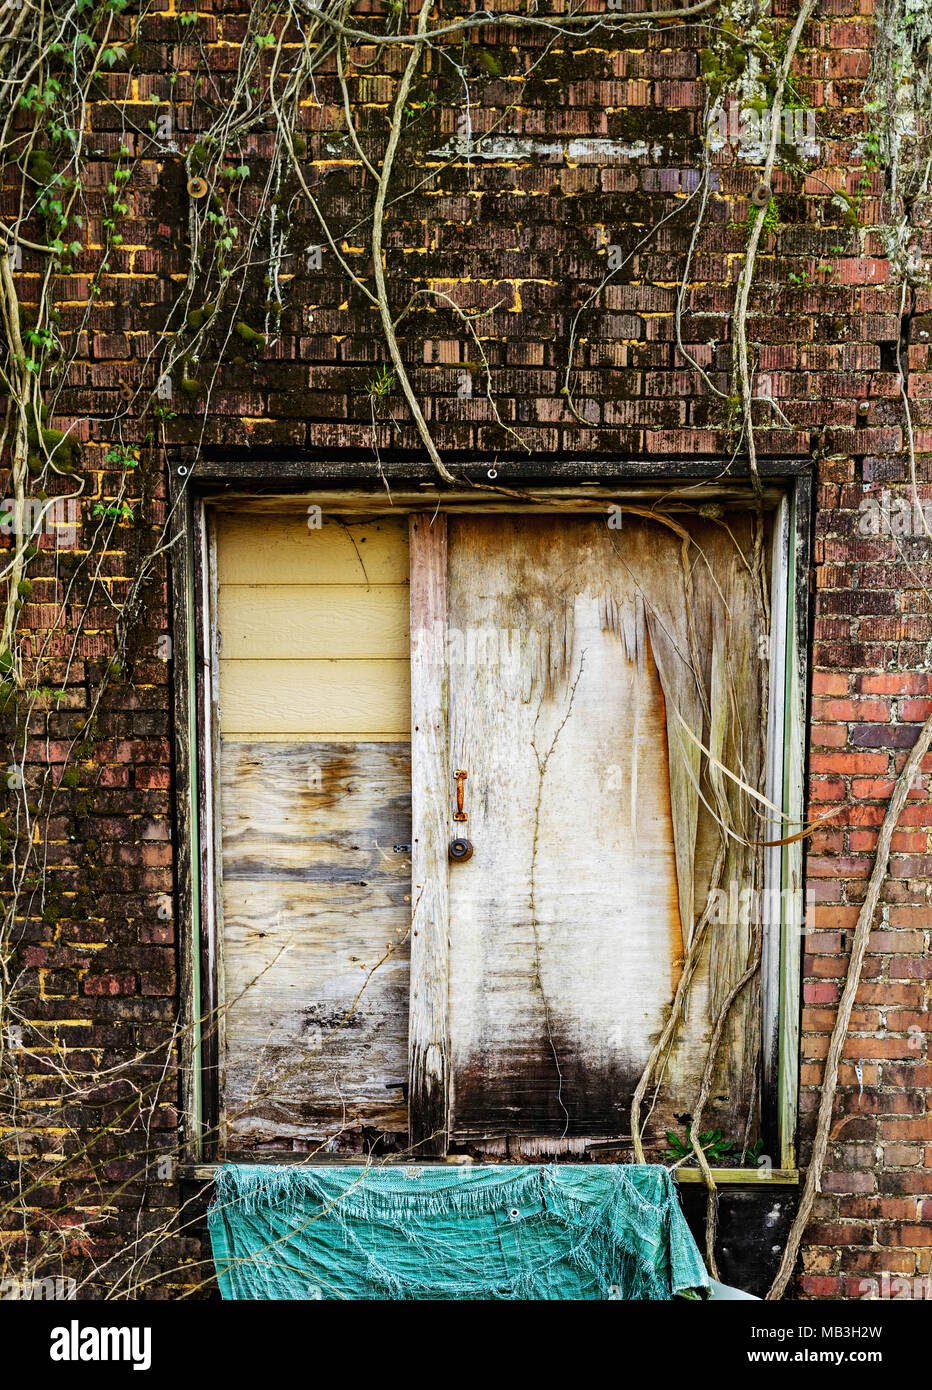 Whatever lies beyond this door is left up to the imagination. - Stock Image